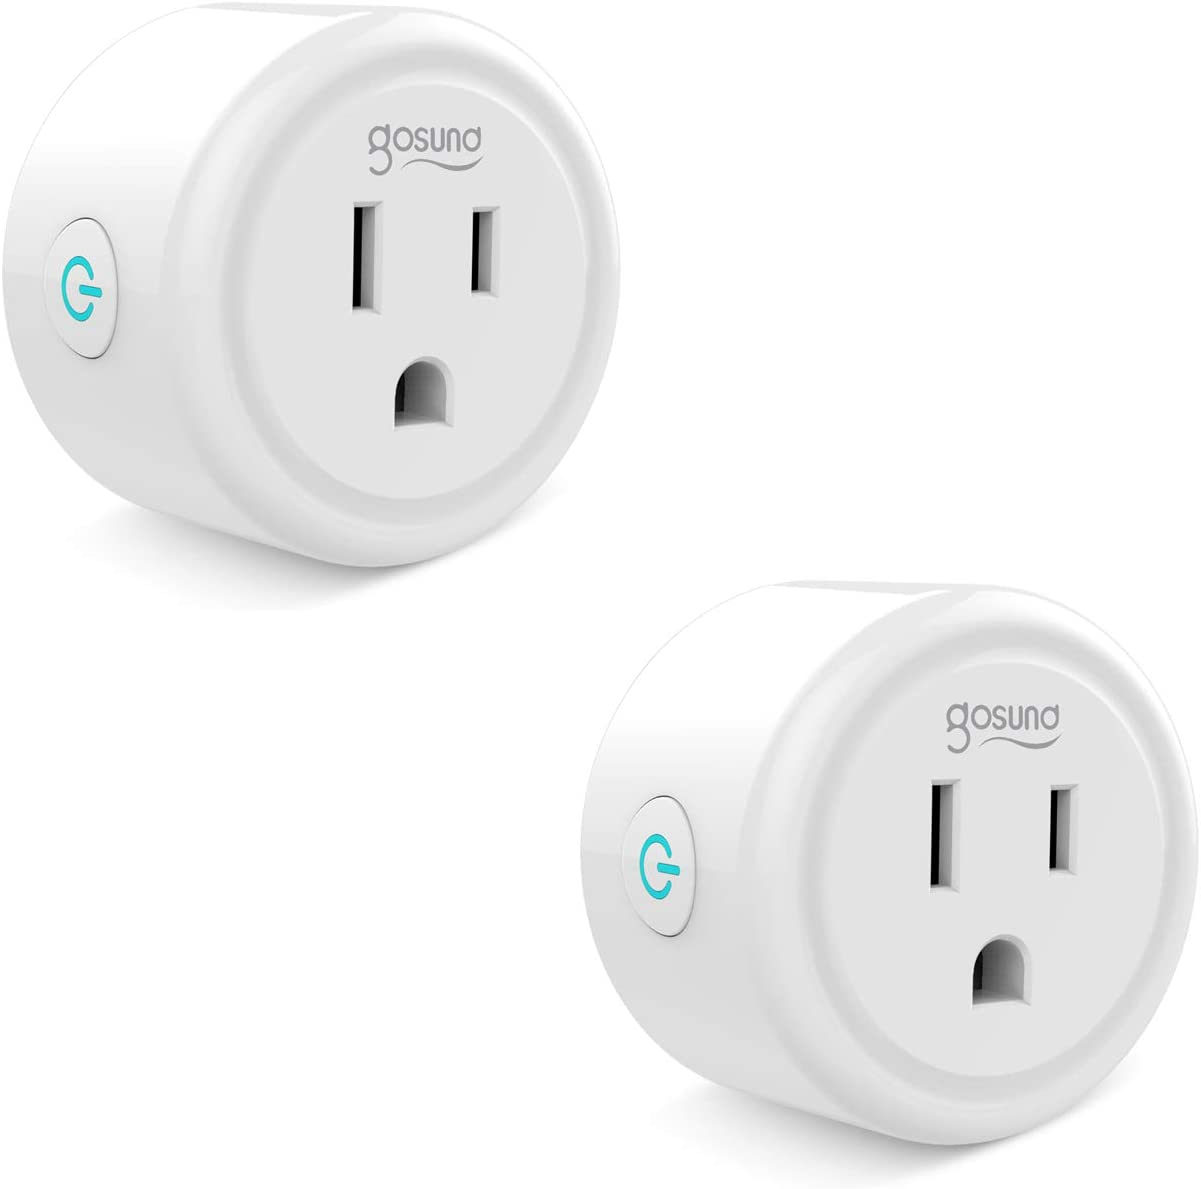 Gosund Smart Plug Compatible with Alexa, Google Home, Smart Outlet No Hub Needed (2Pack)